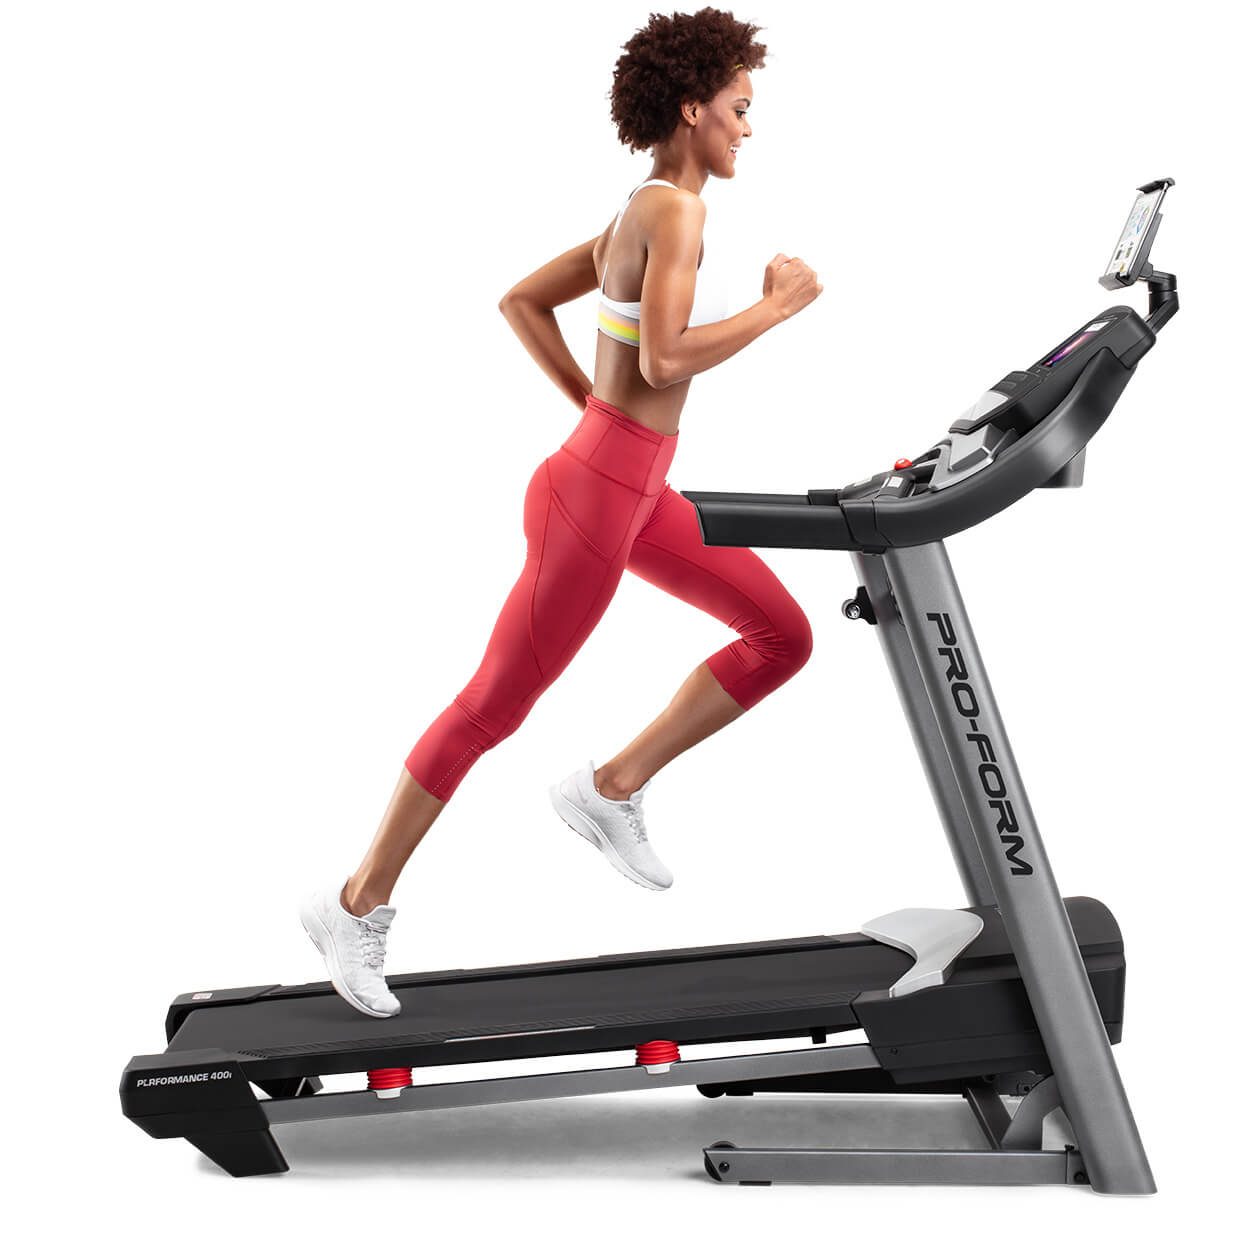 ProForm Treadmills SMART Performance 400i  gallery image 4